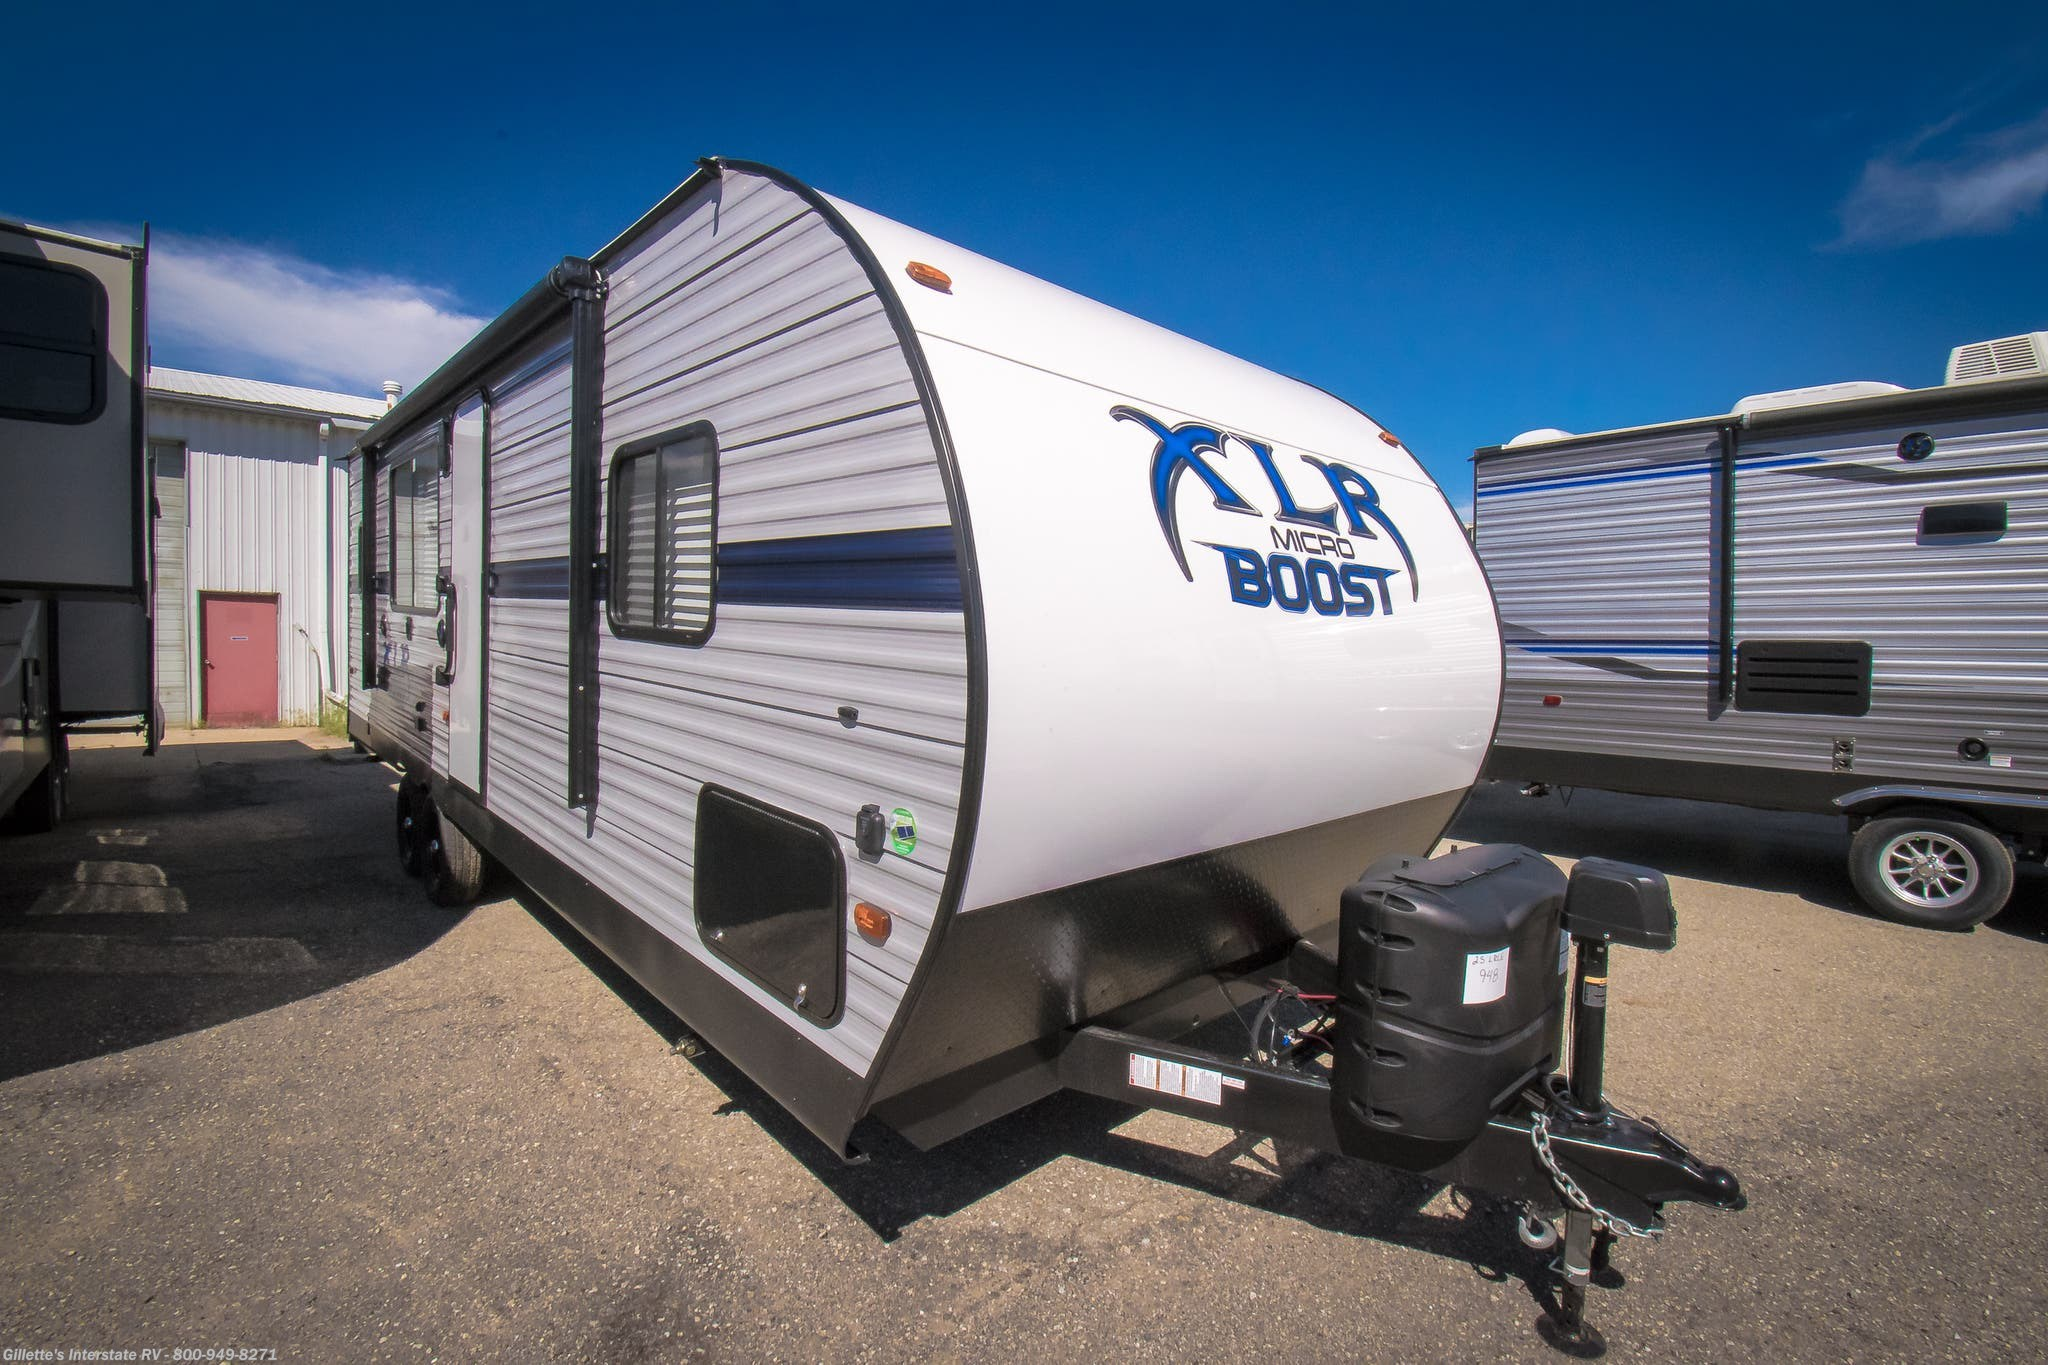 2020 Forest River RV XLR Micro Boost 25LRLE for Sale in East Lansing, MI |  LZ790948